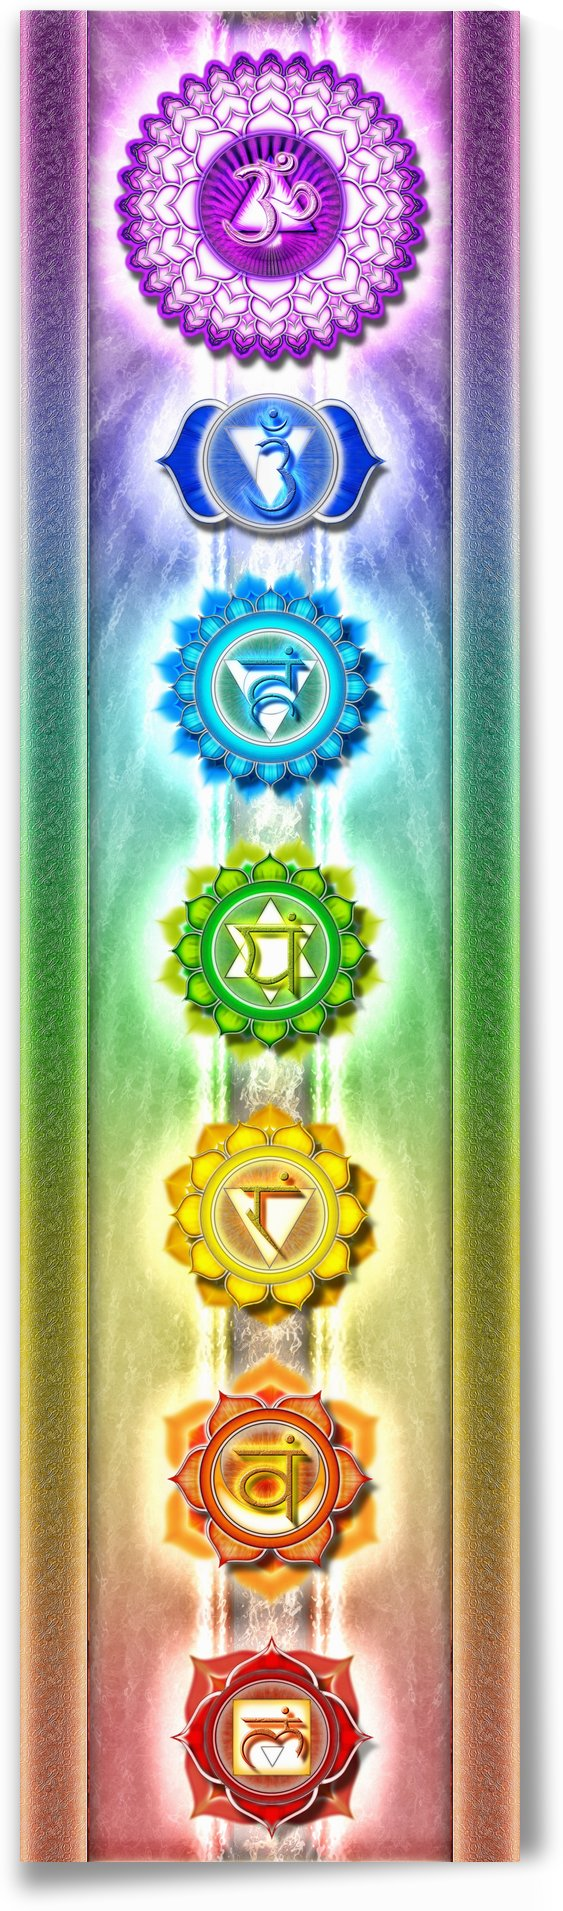 The Seven Chakras - Series I by Dirk Czarnota